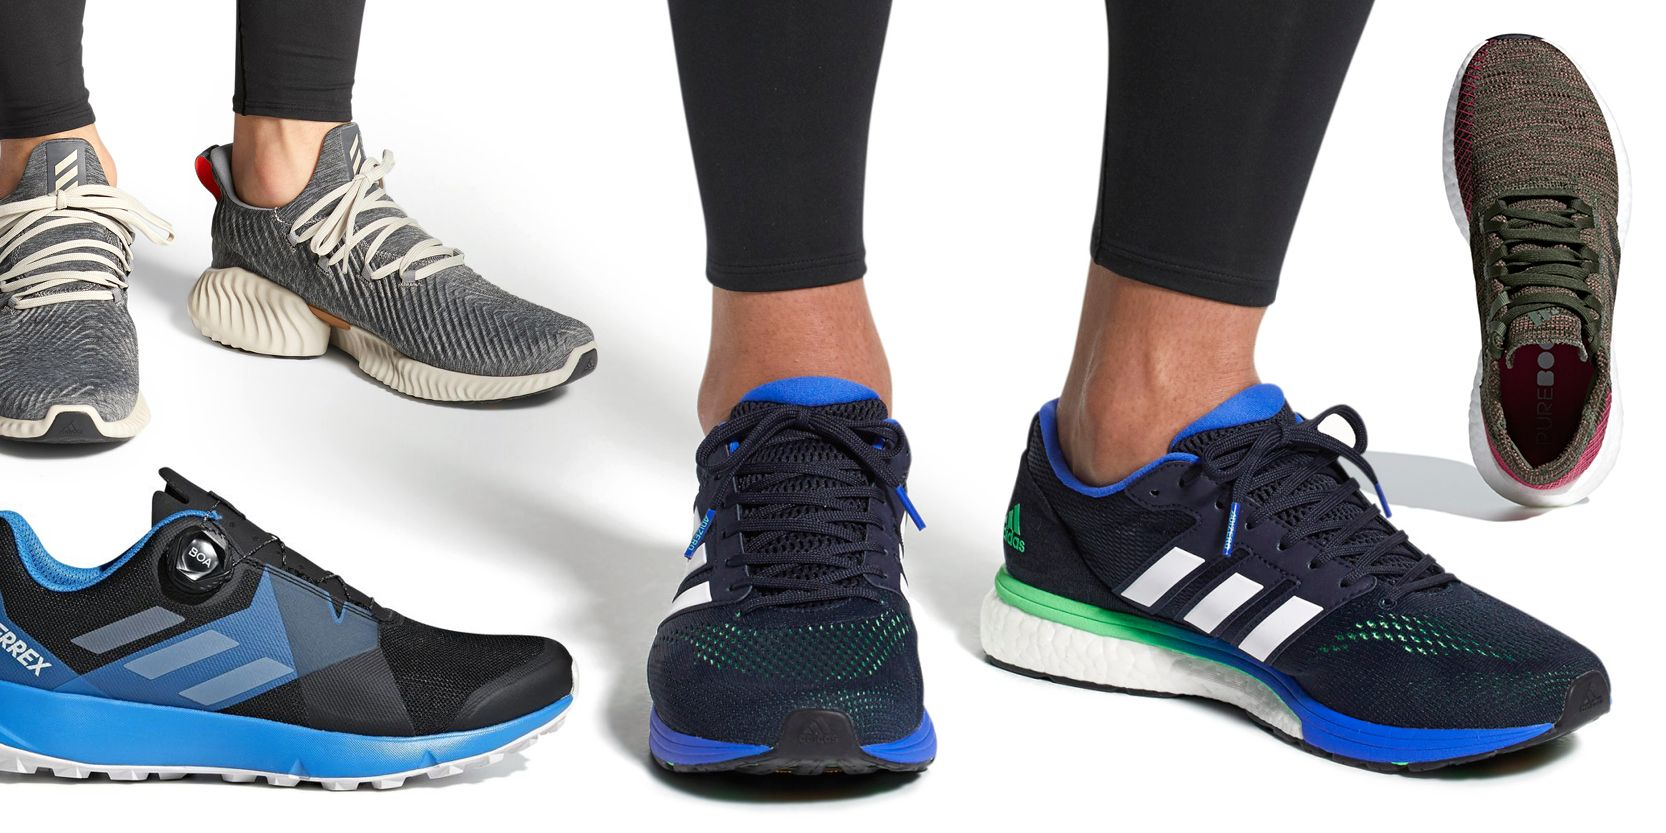 Best Running Shoes From Adidas